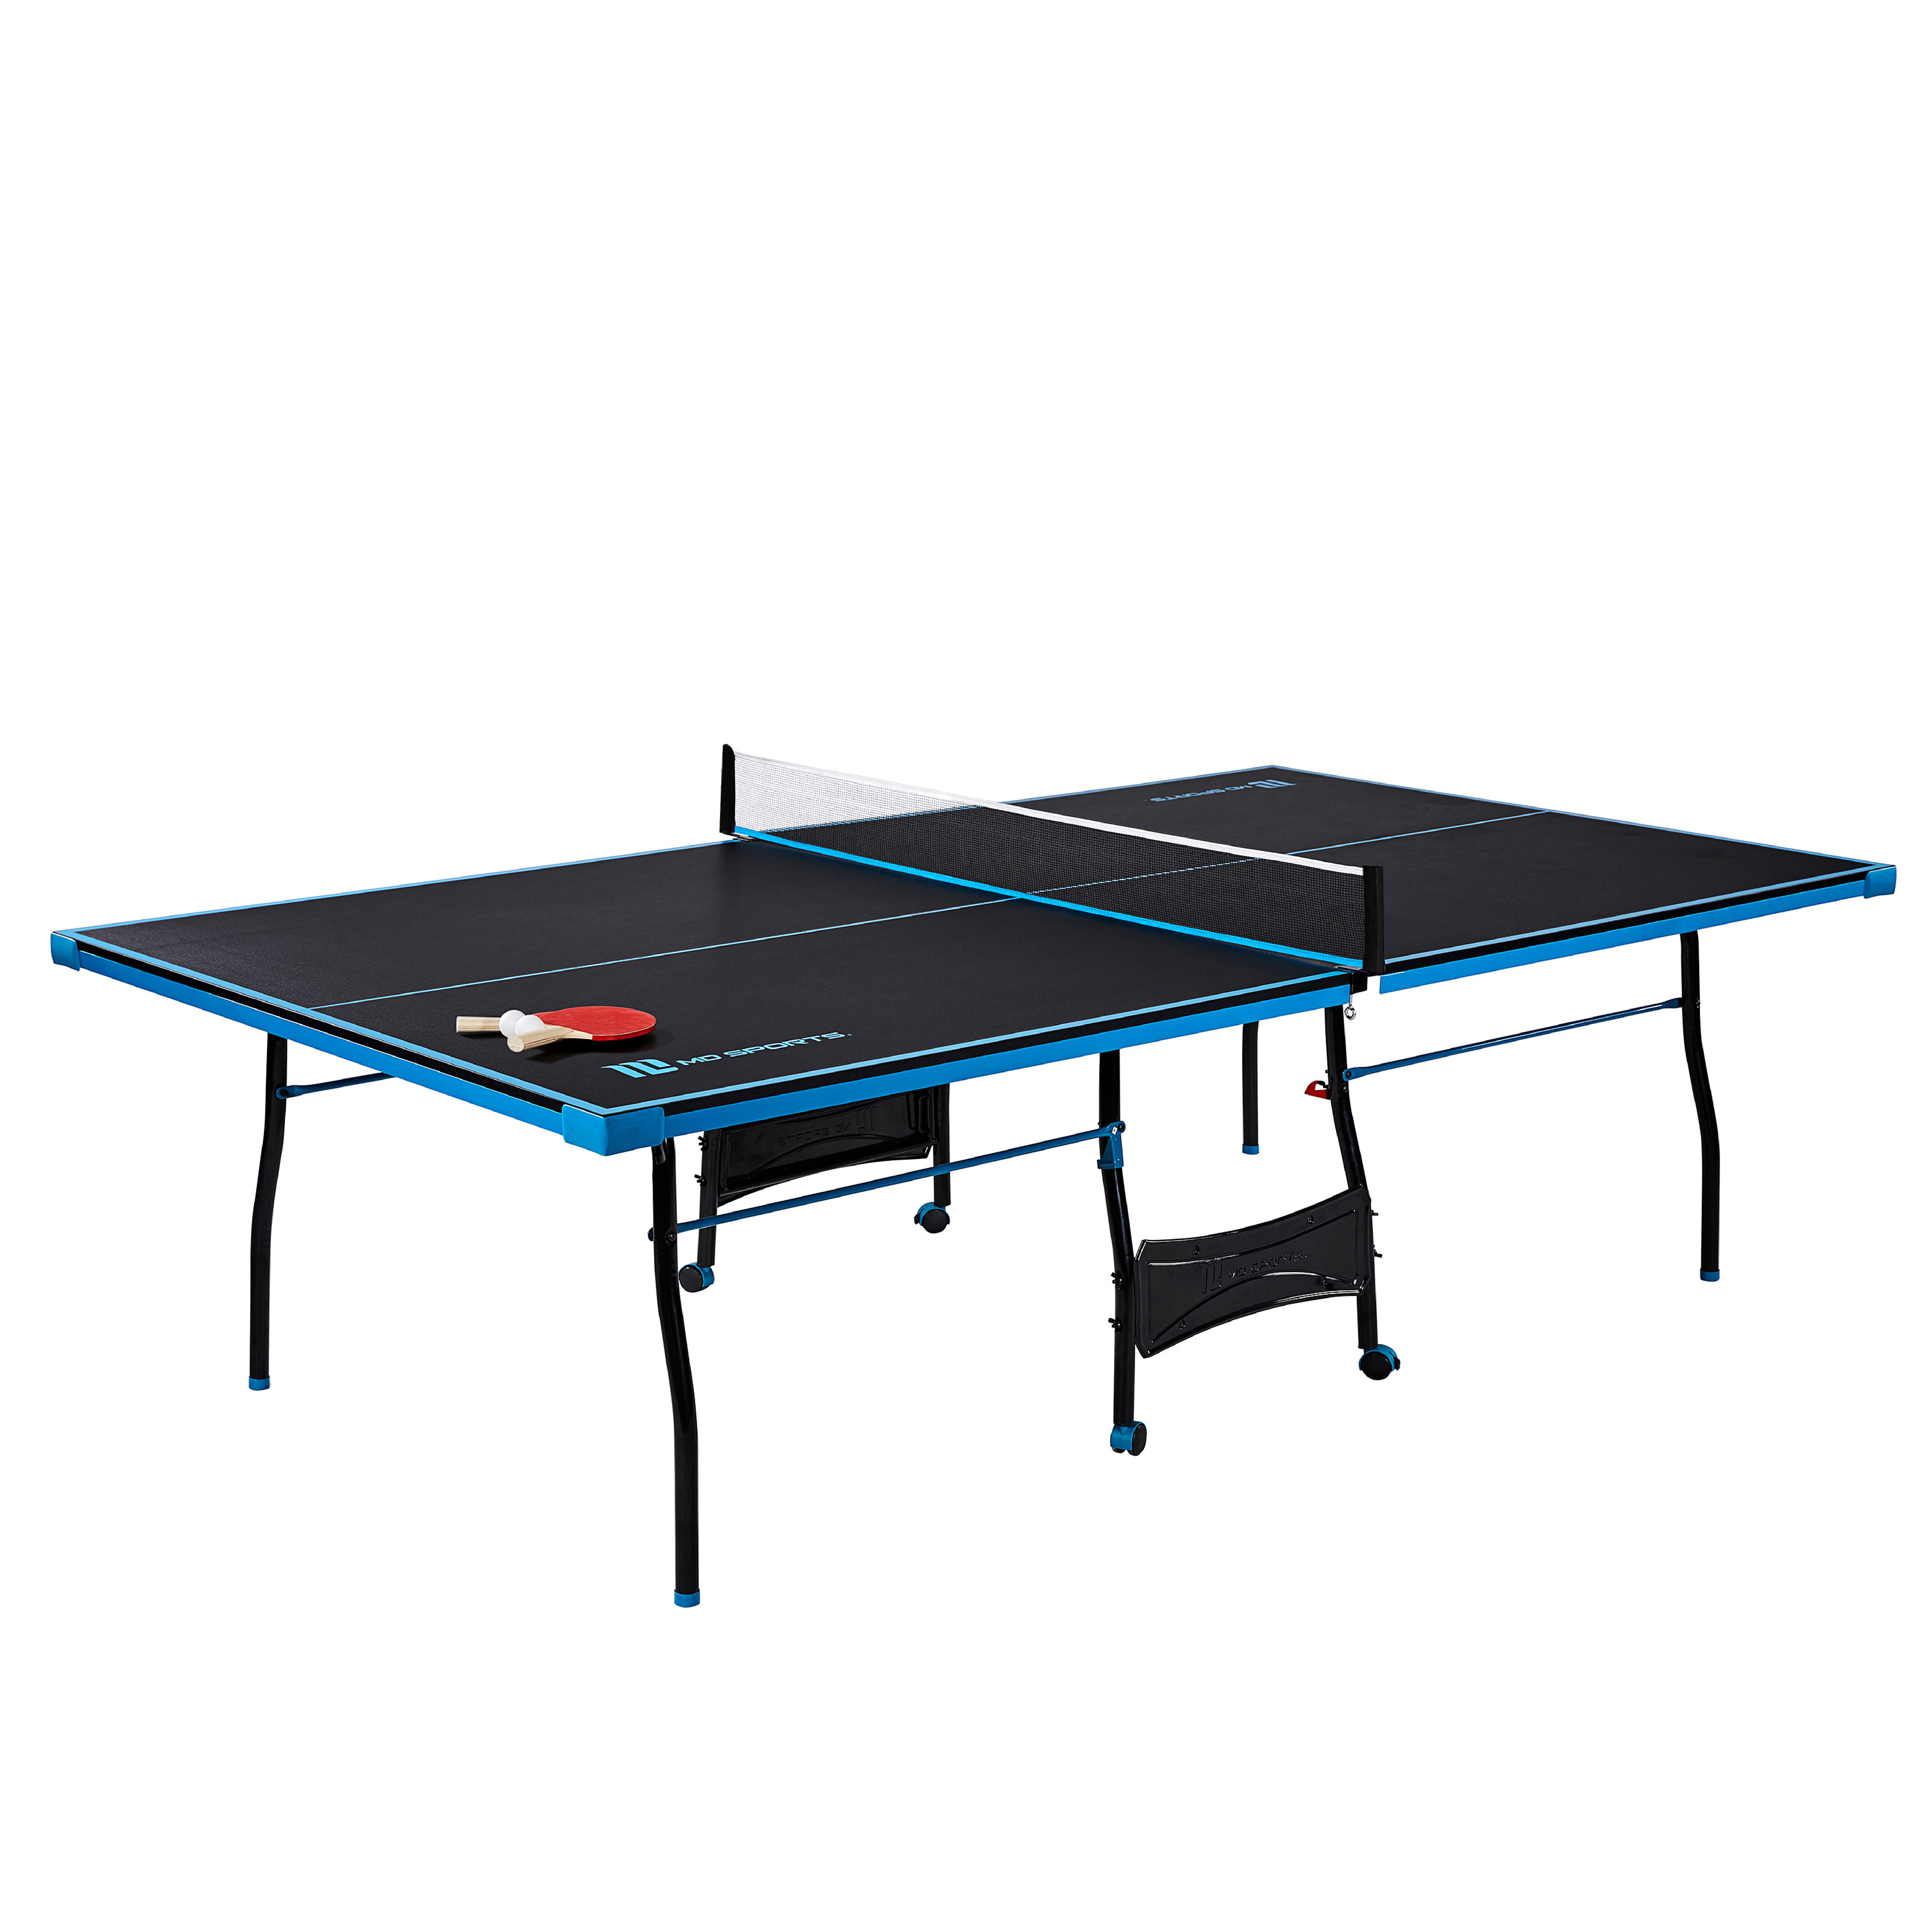 Md Sports Official Size 15mm 4 Piece Indoor Table Tennis Accessories Included Black Blue Walmart Com Walmart Com